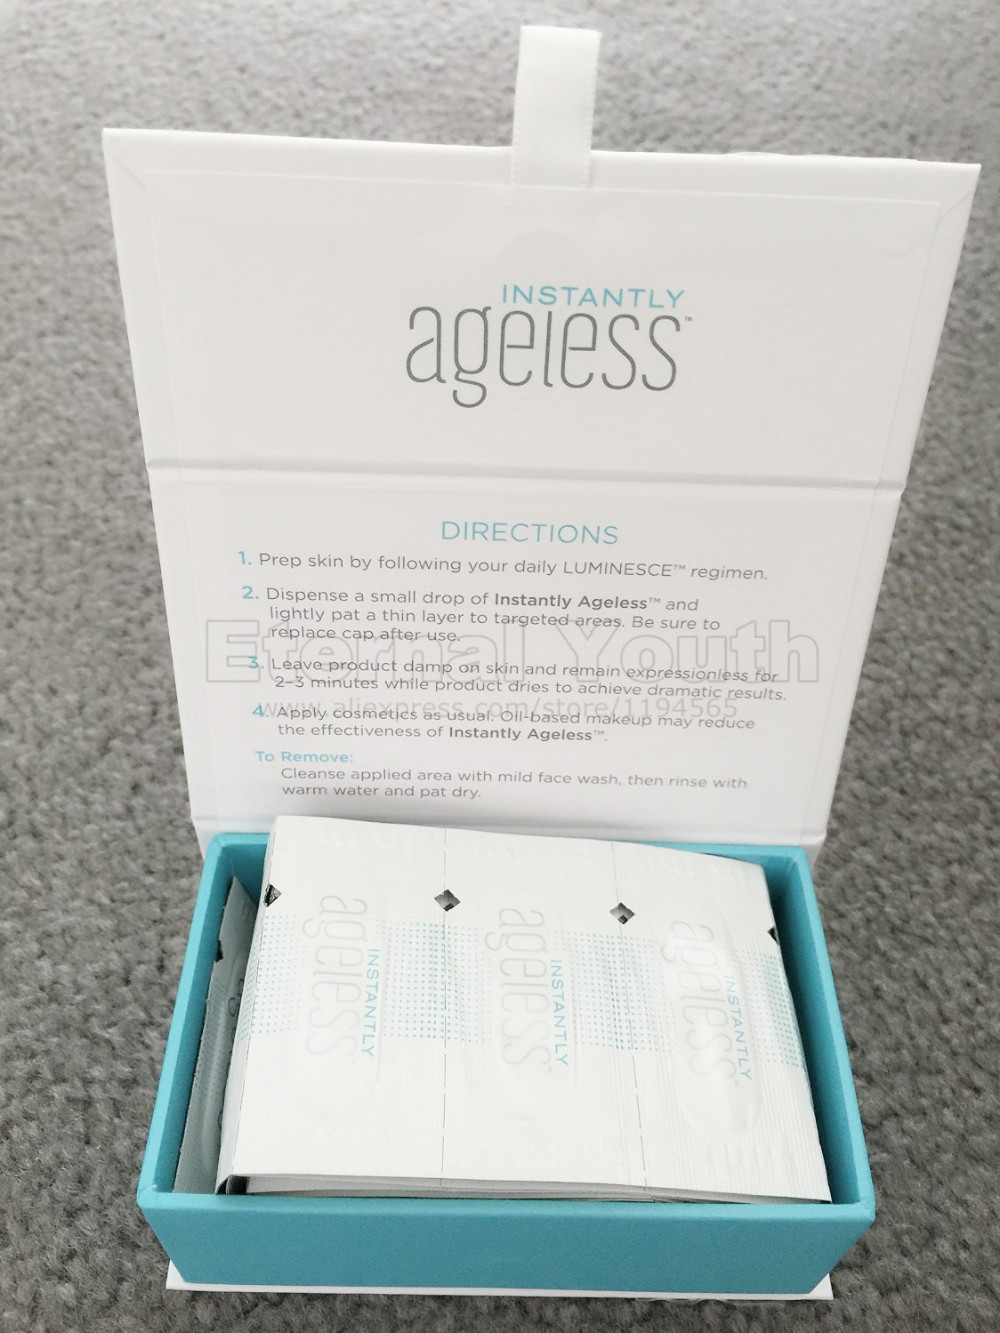 5Sachets Style of Jeunesse Instantly Ageless Without the Needles anti wrinkle microcream